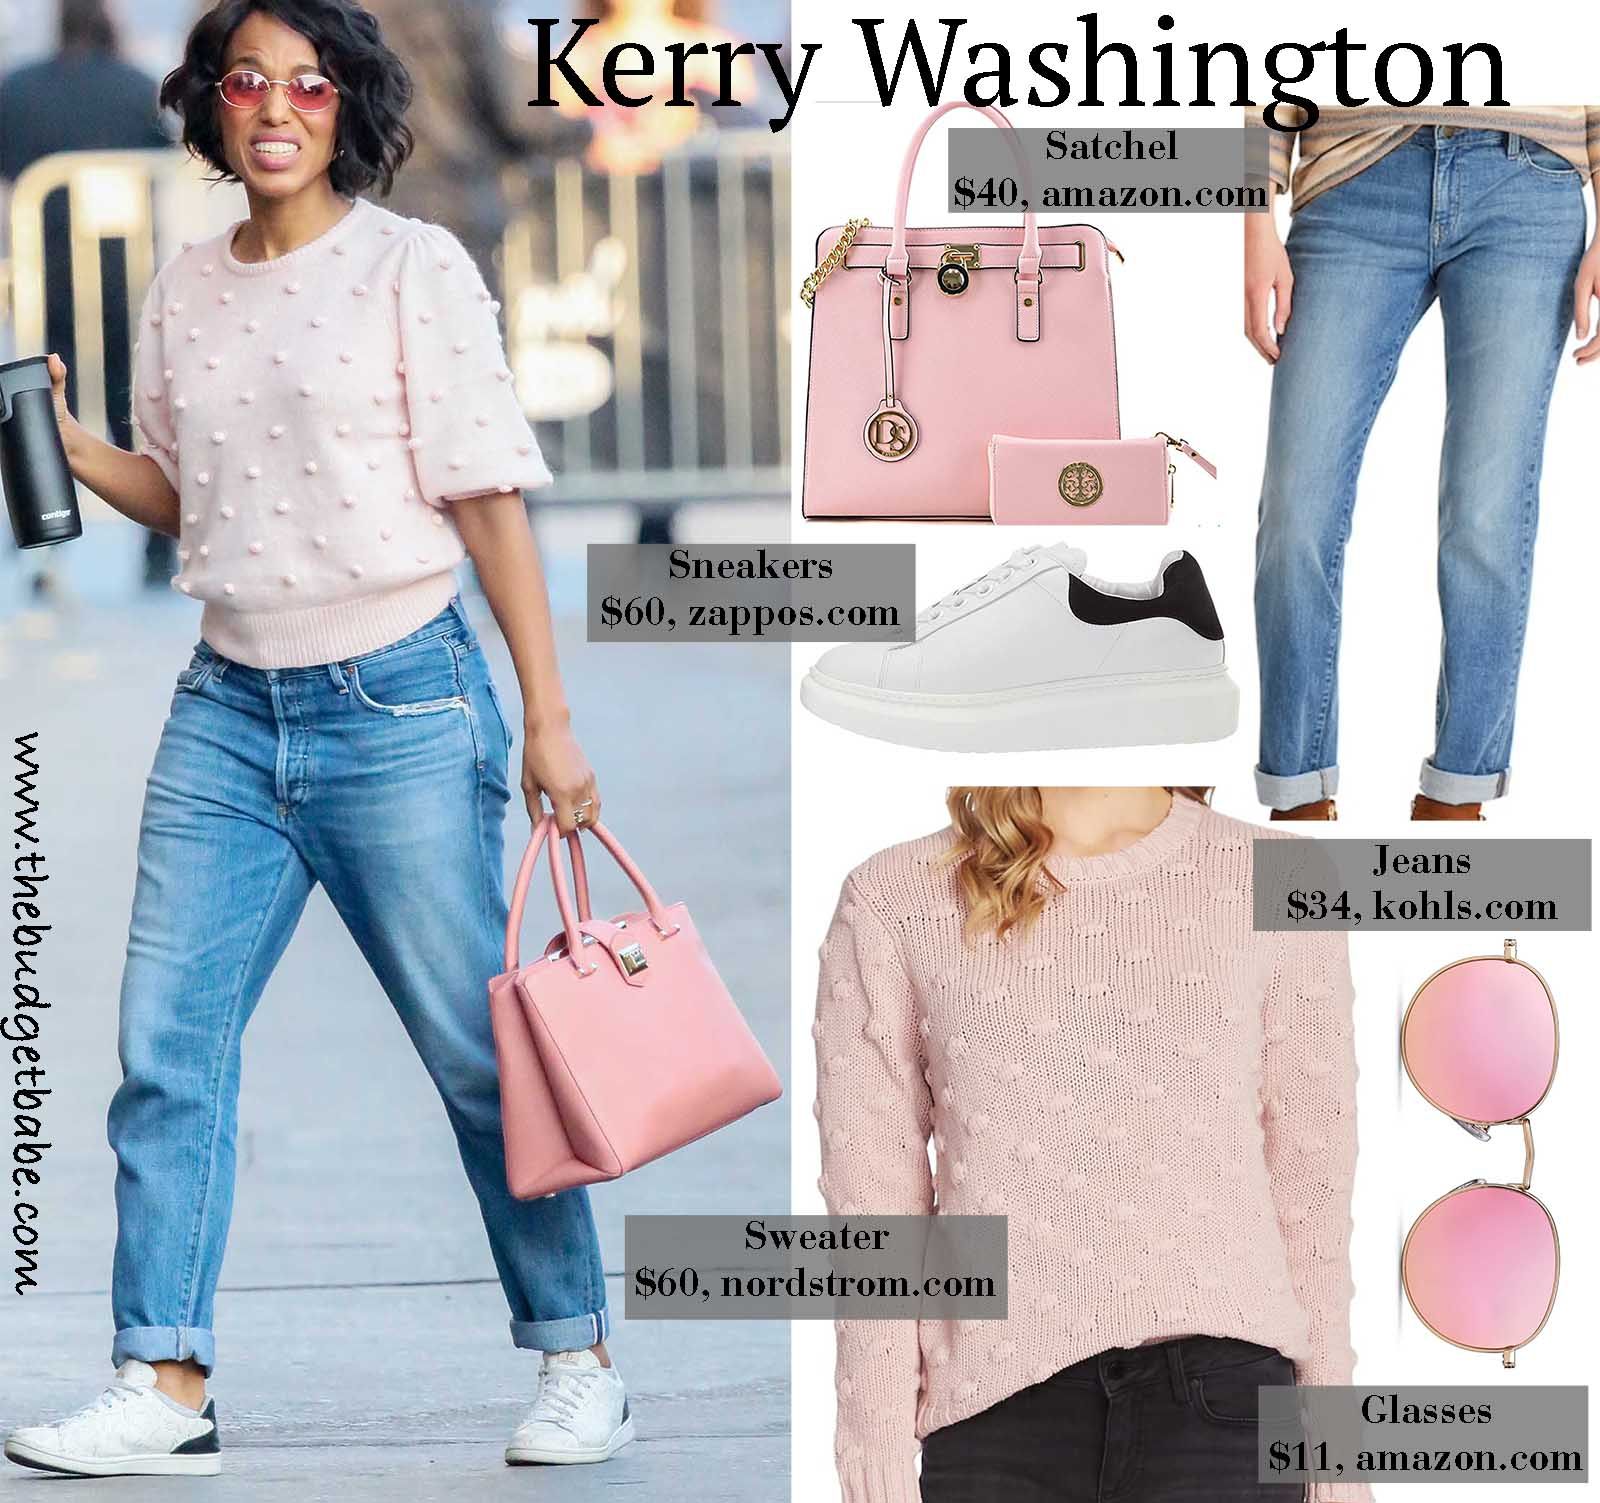 Kerry Washington looks adorable and stylish in a sweater and sneakers.